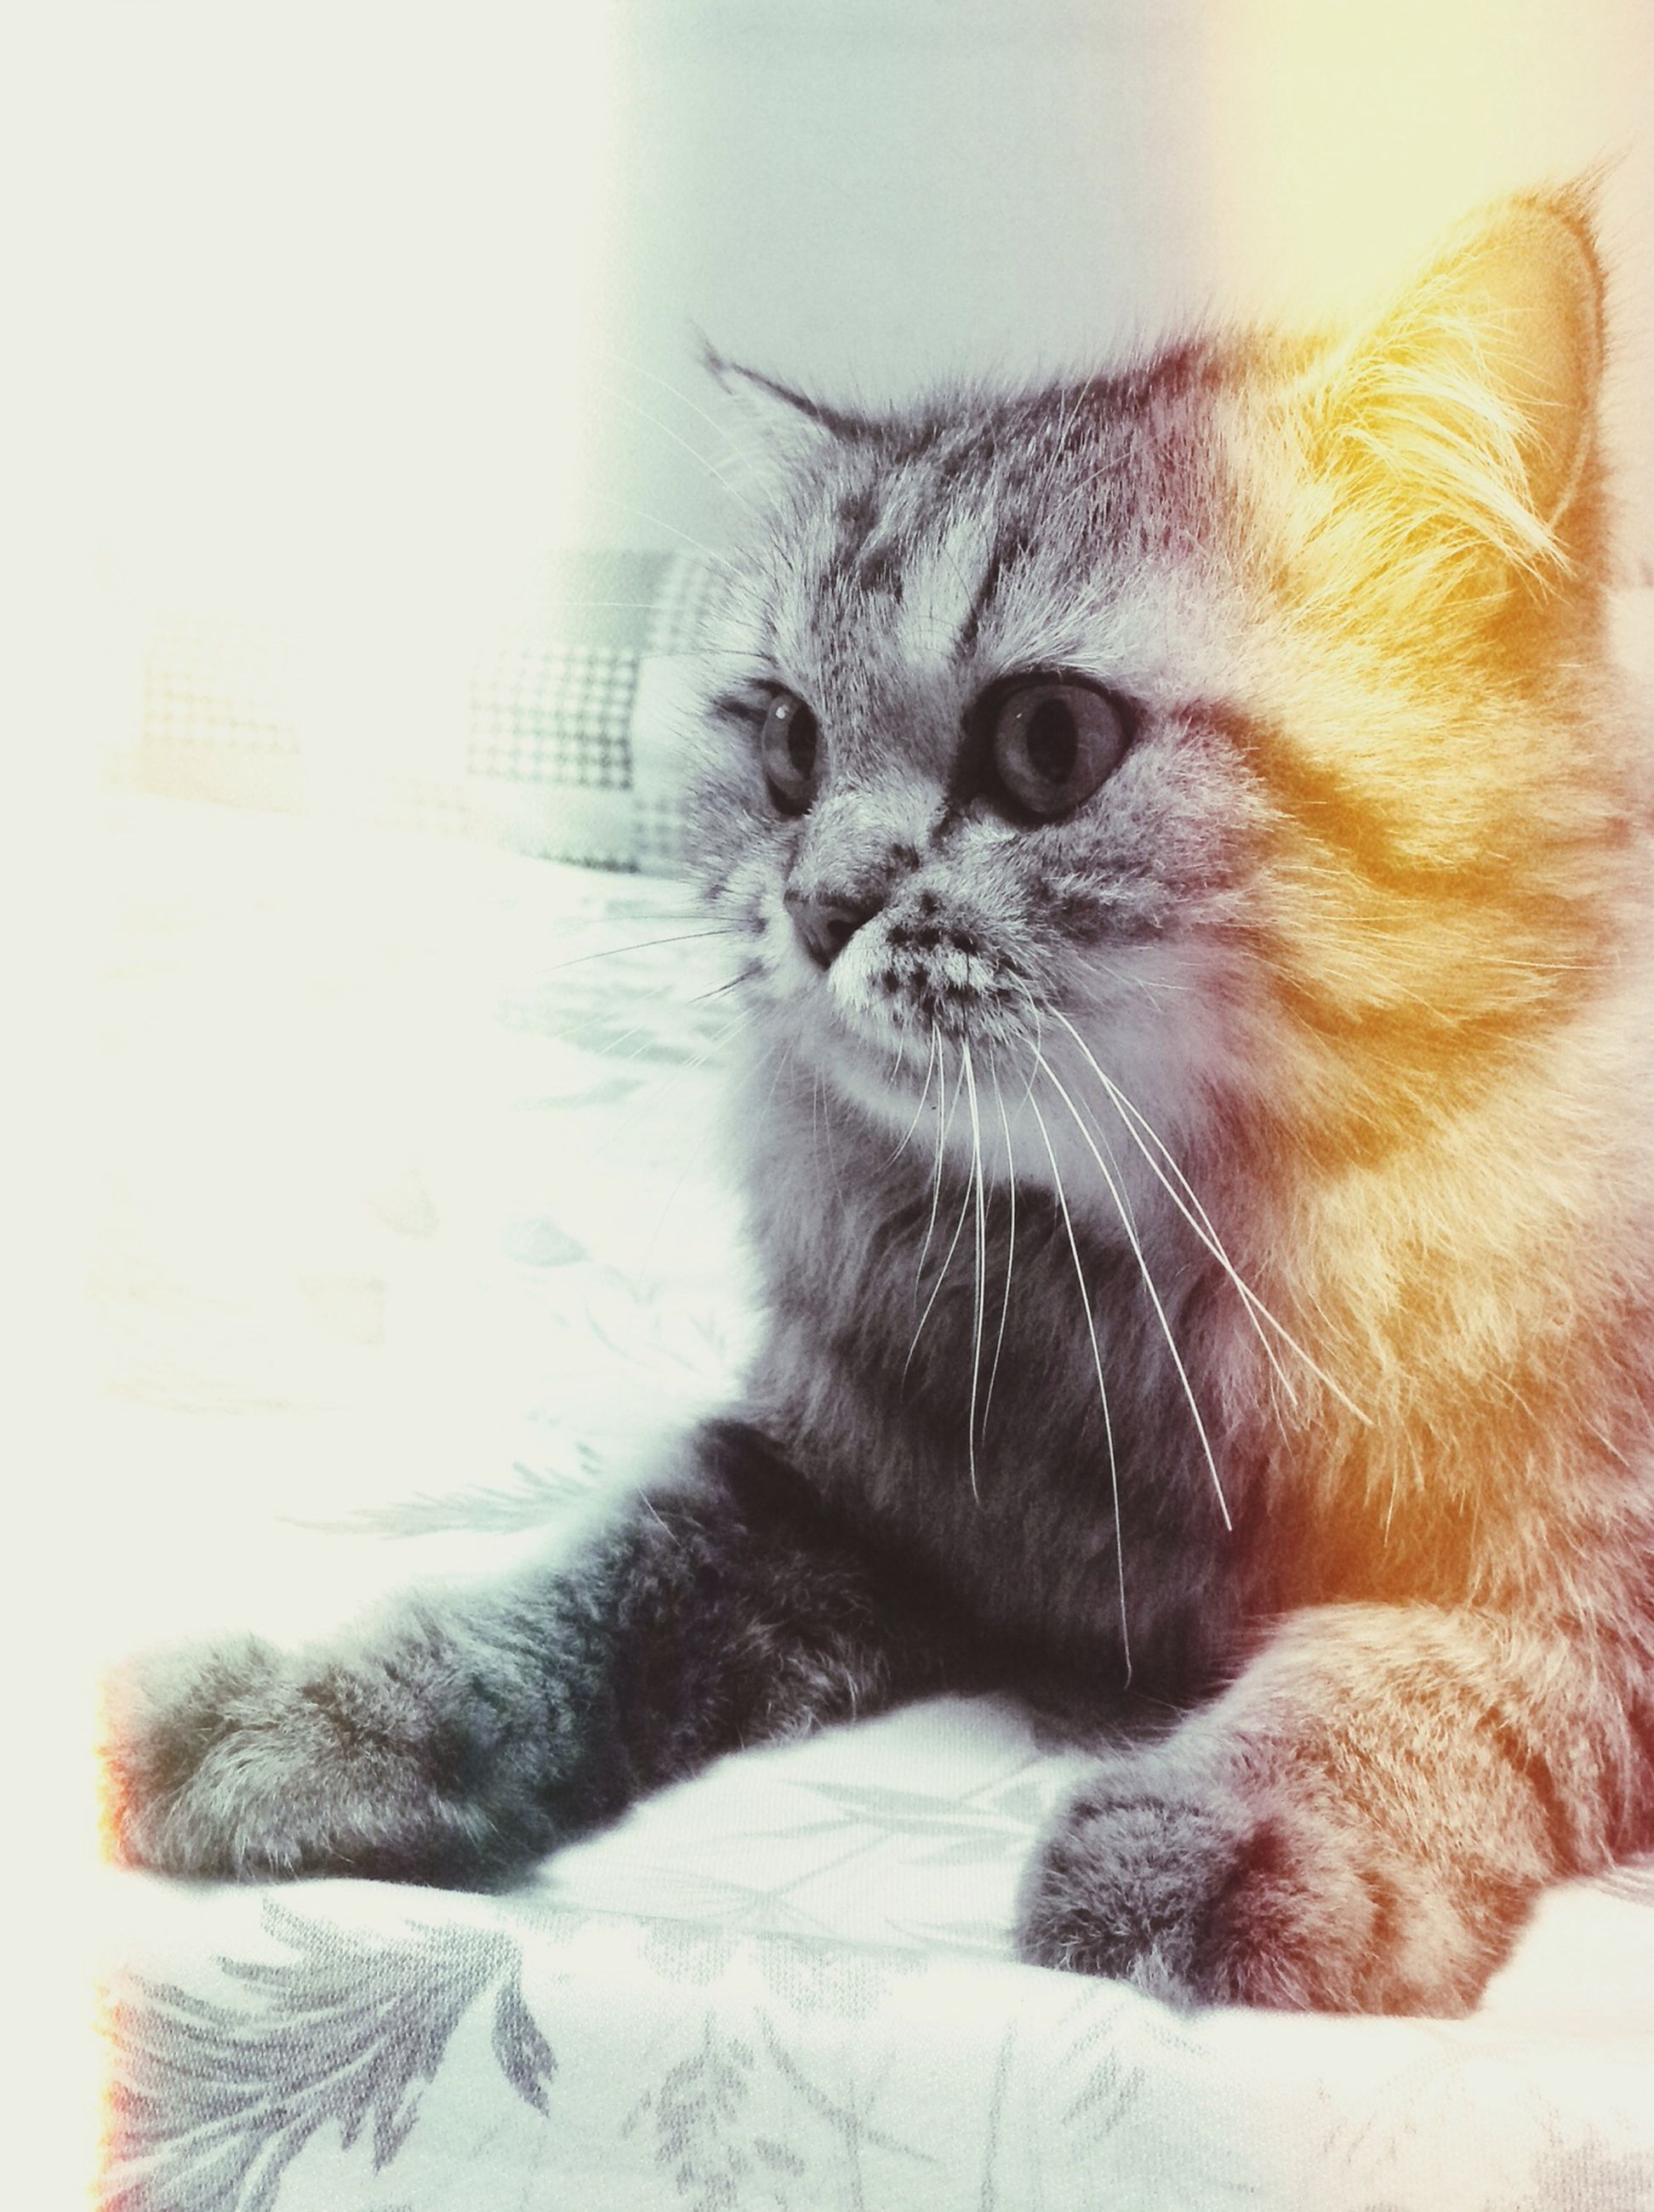 pets, one animal, domestic cat, animal themes, domestic animals, cat, mammal, feline, whisker, indoors, relaxation, animal head, close-up, looking away, lying down, home interior, animal body part, alertness, no people, animal